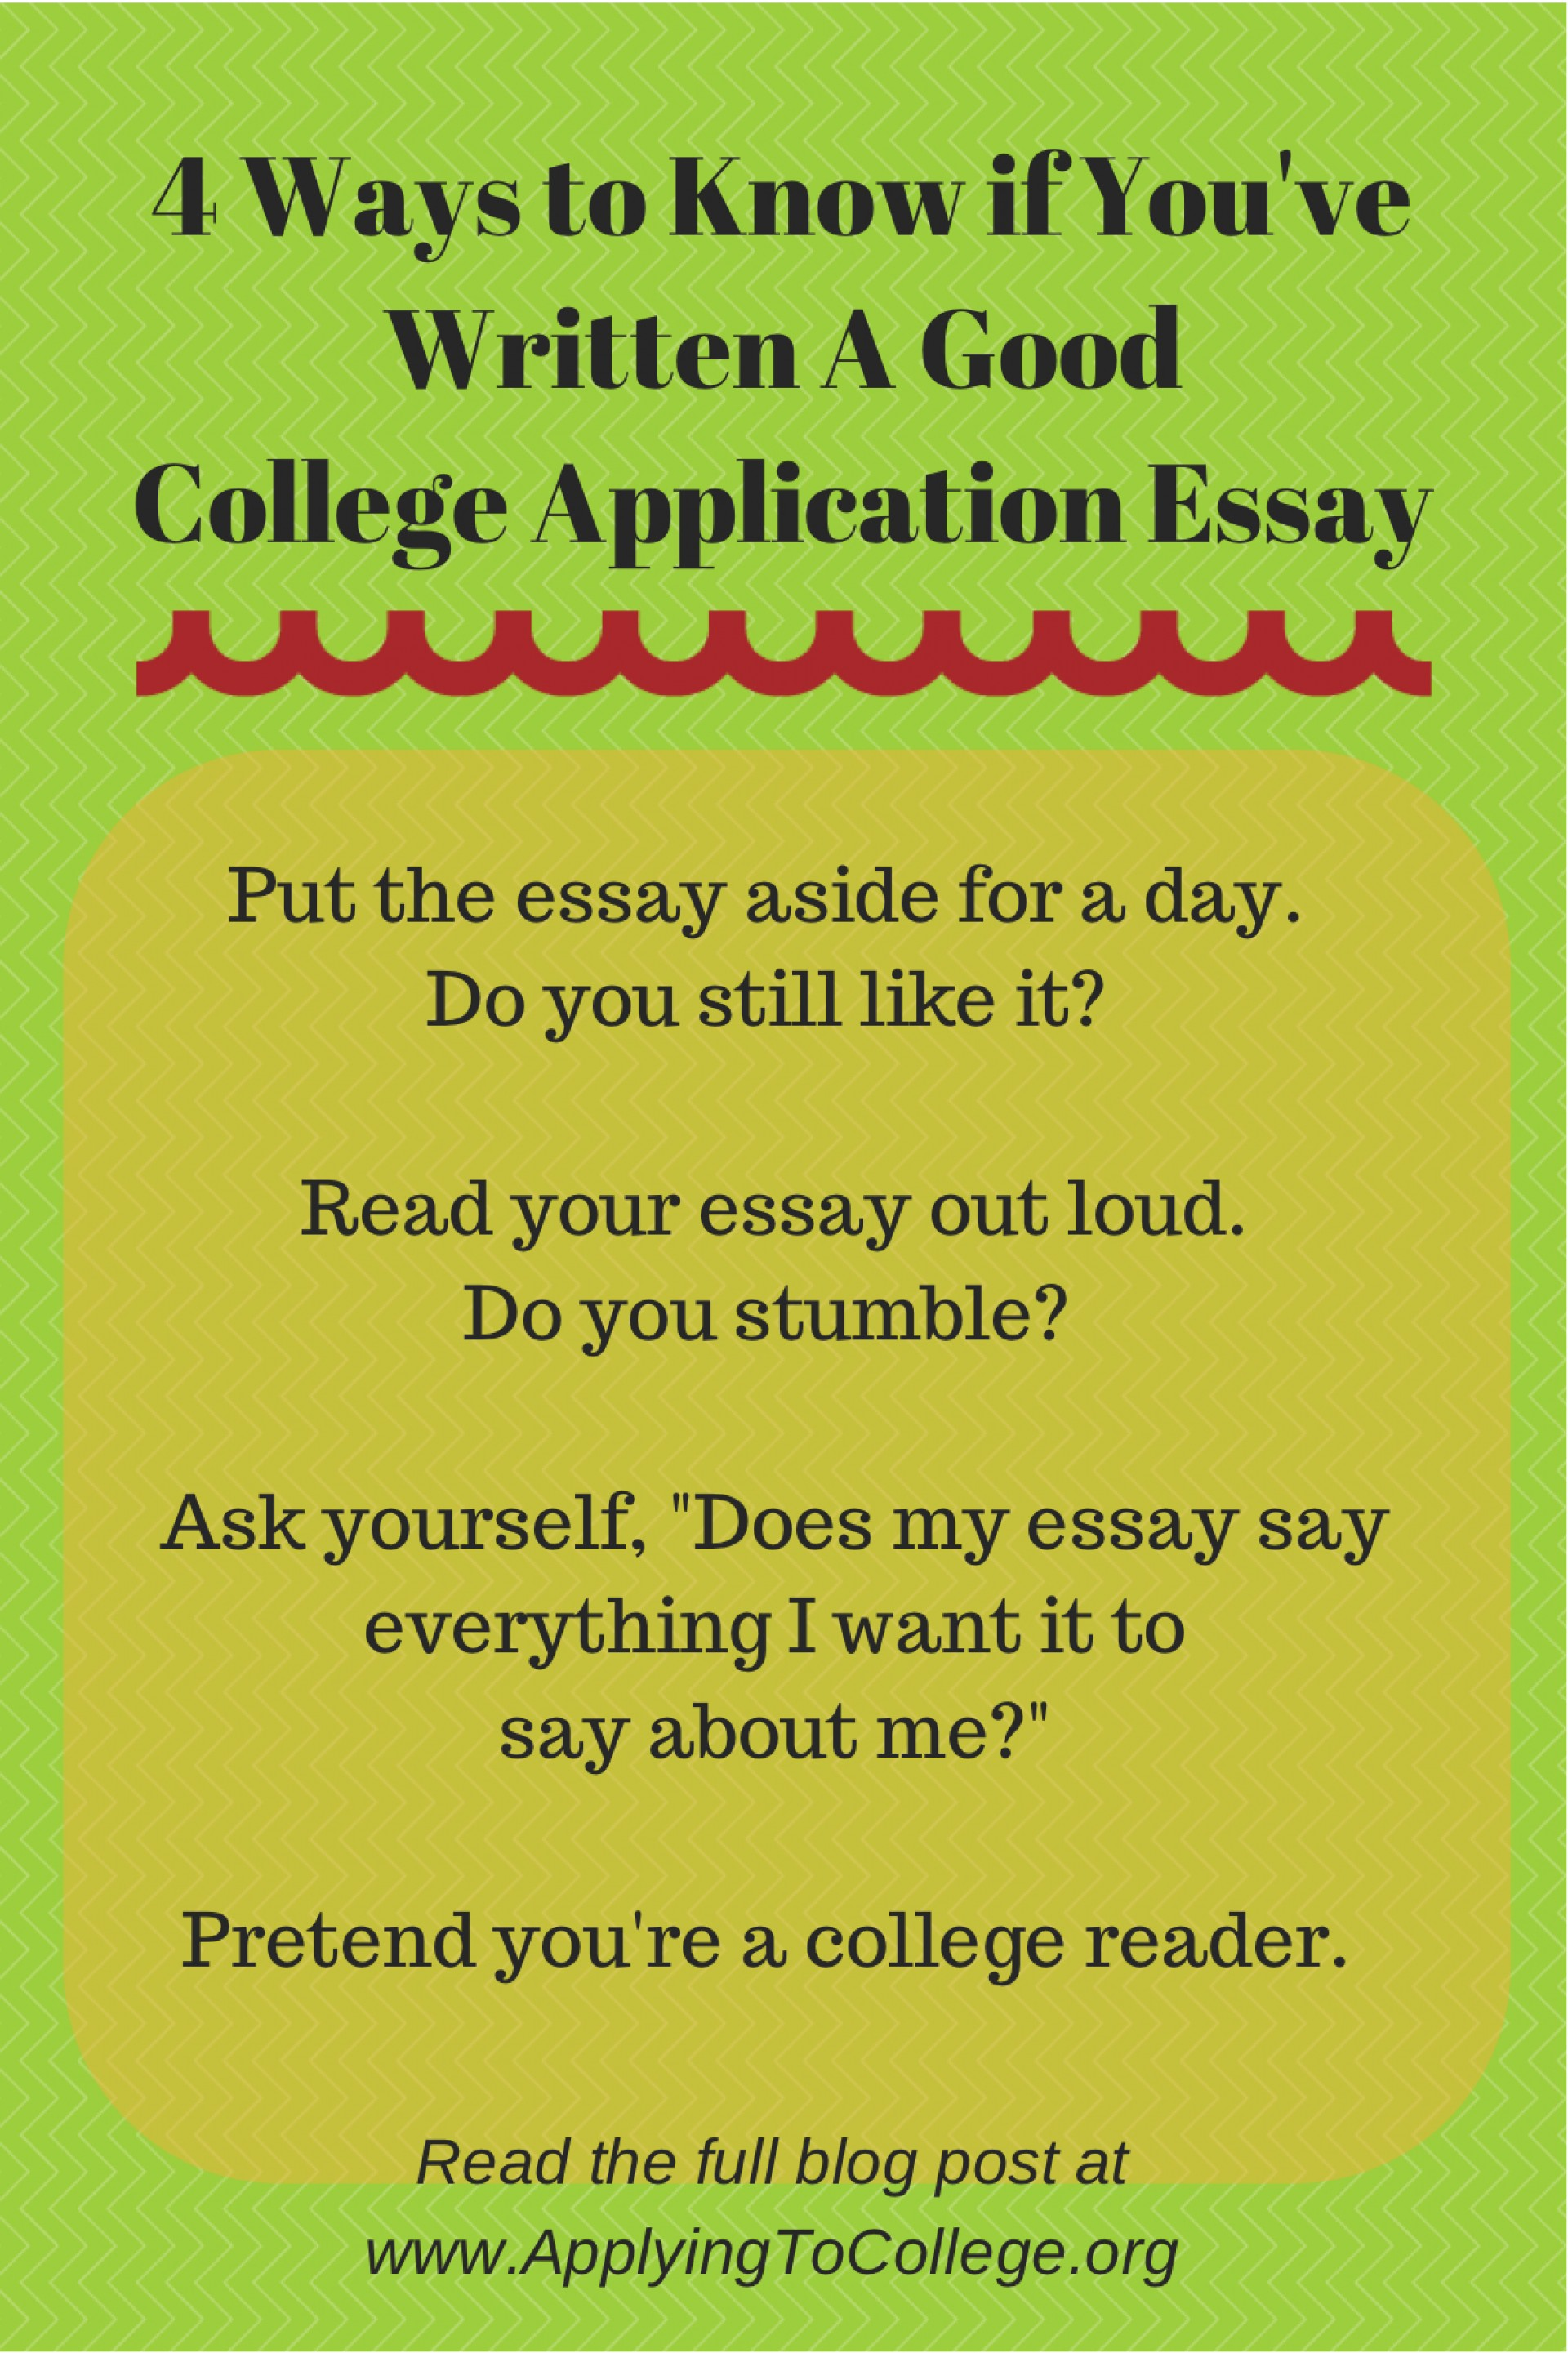 009 4ways To Know If Youve Written Good Read My Essay Unusual Reddit For Free Online 1920